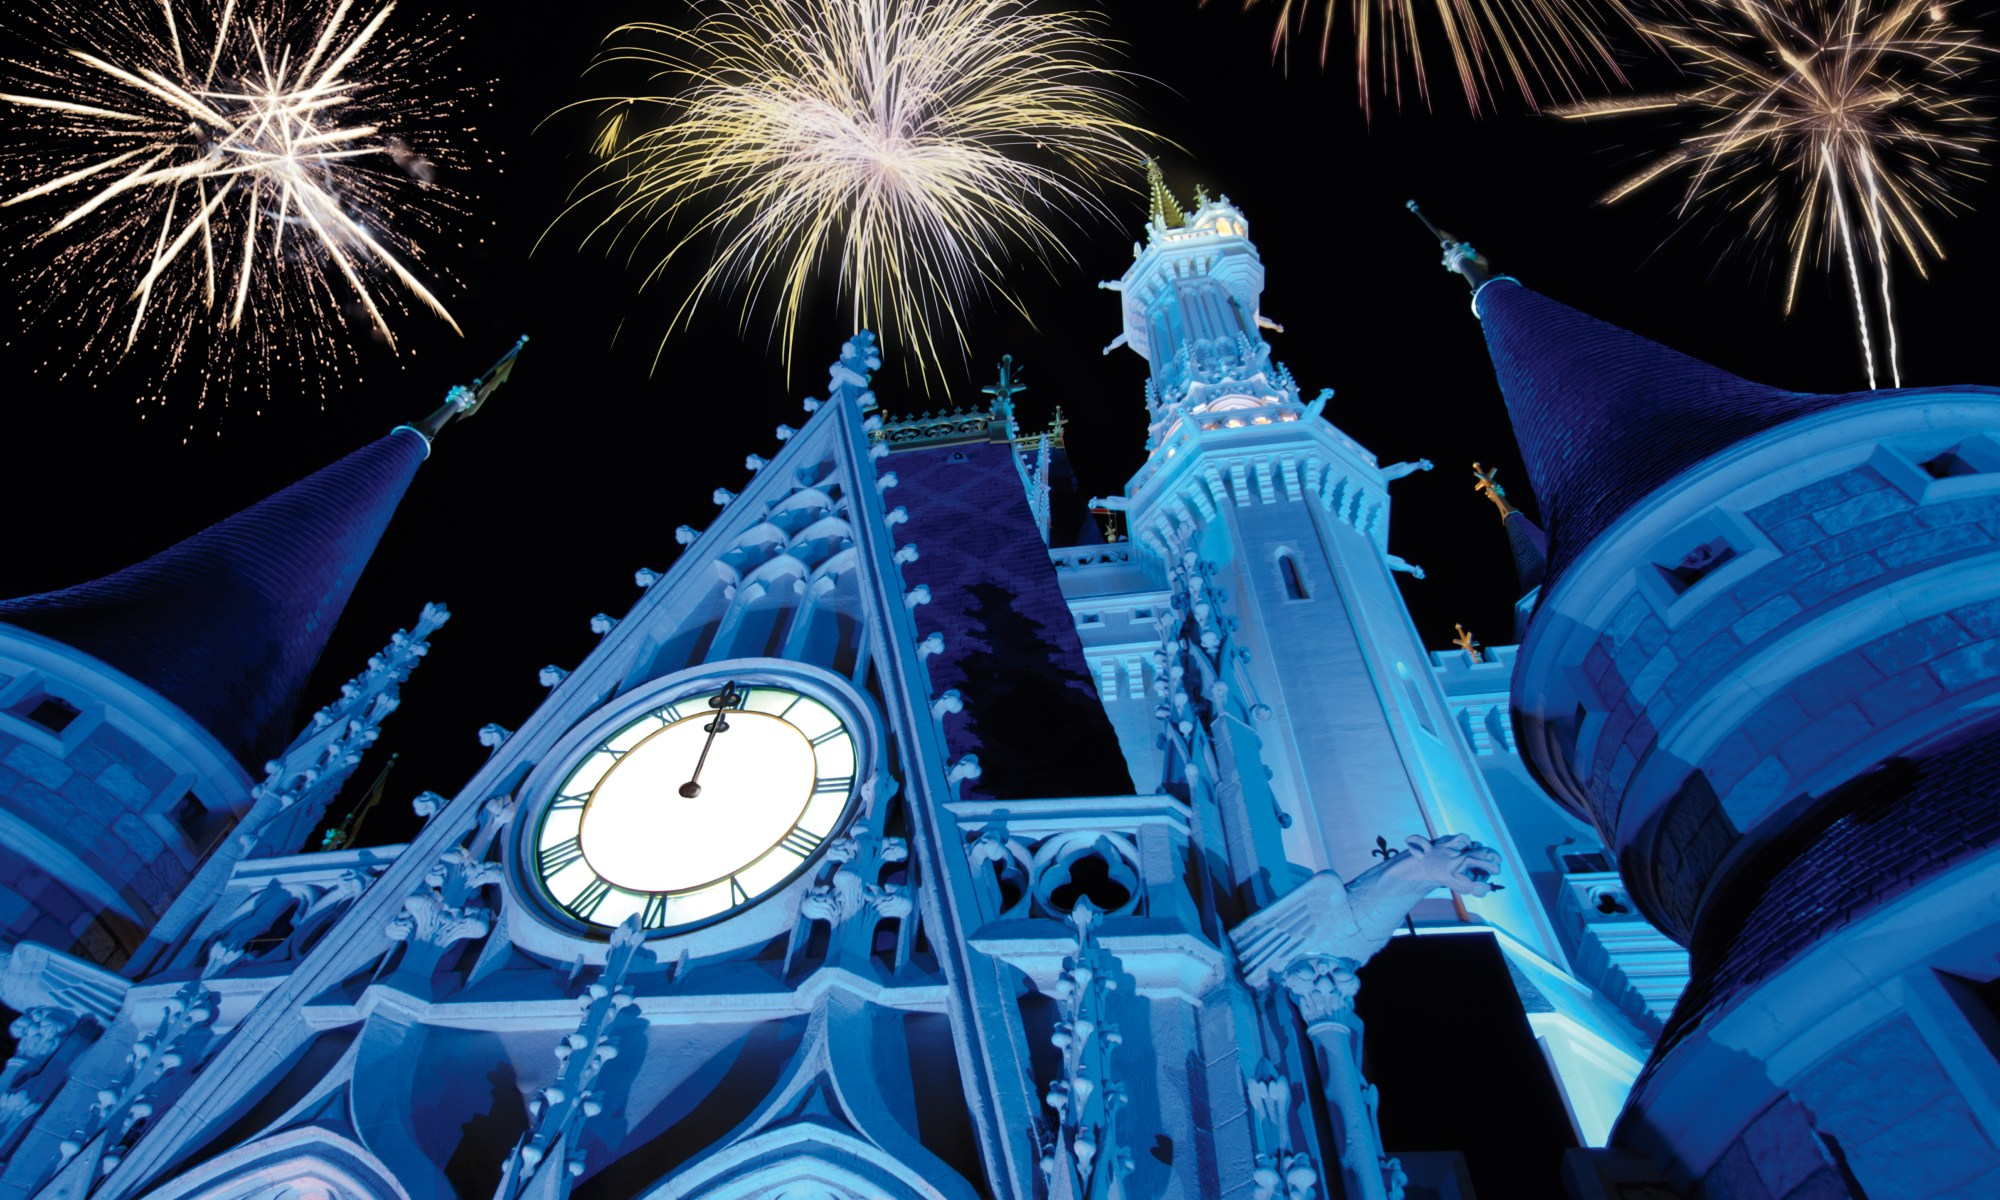 Photo of Cinderella Castle on New Year's Eve